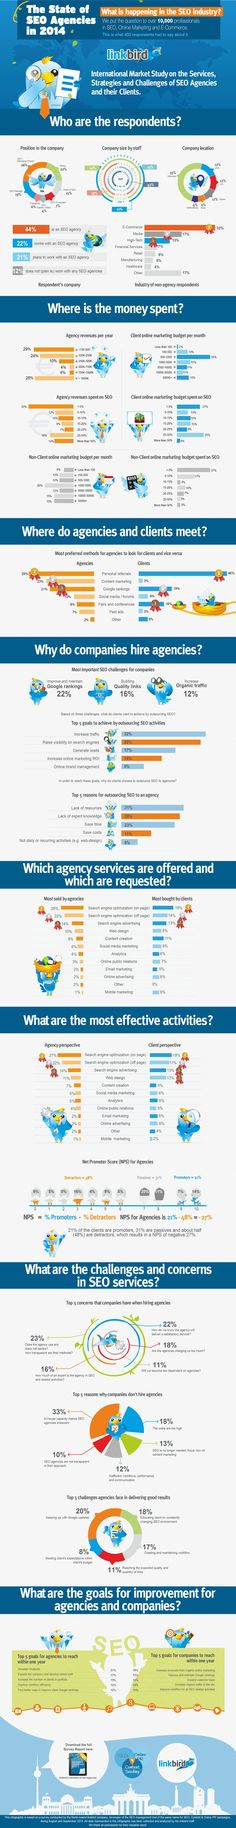 The state of SEO agencies in 2014 by http://www.wordtracker.com/blog/state-of-seo-agencies-2014